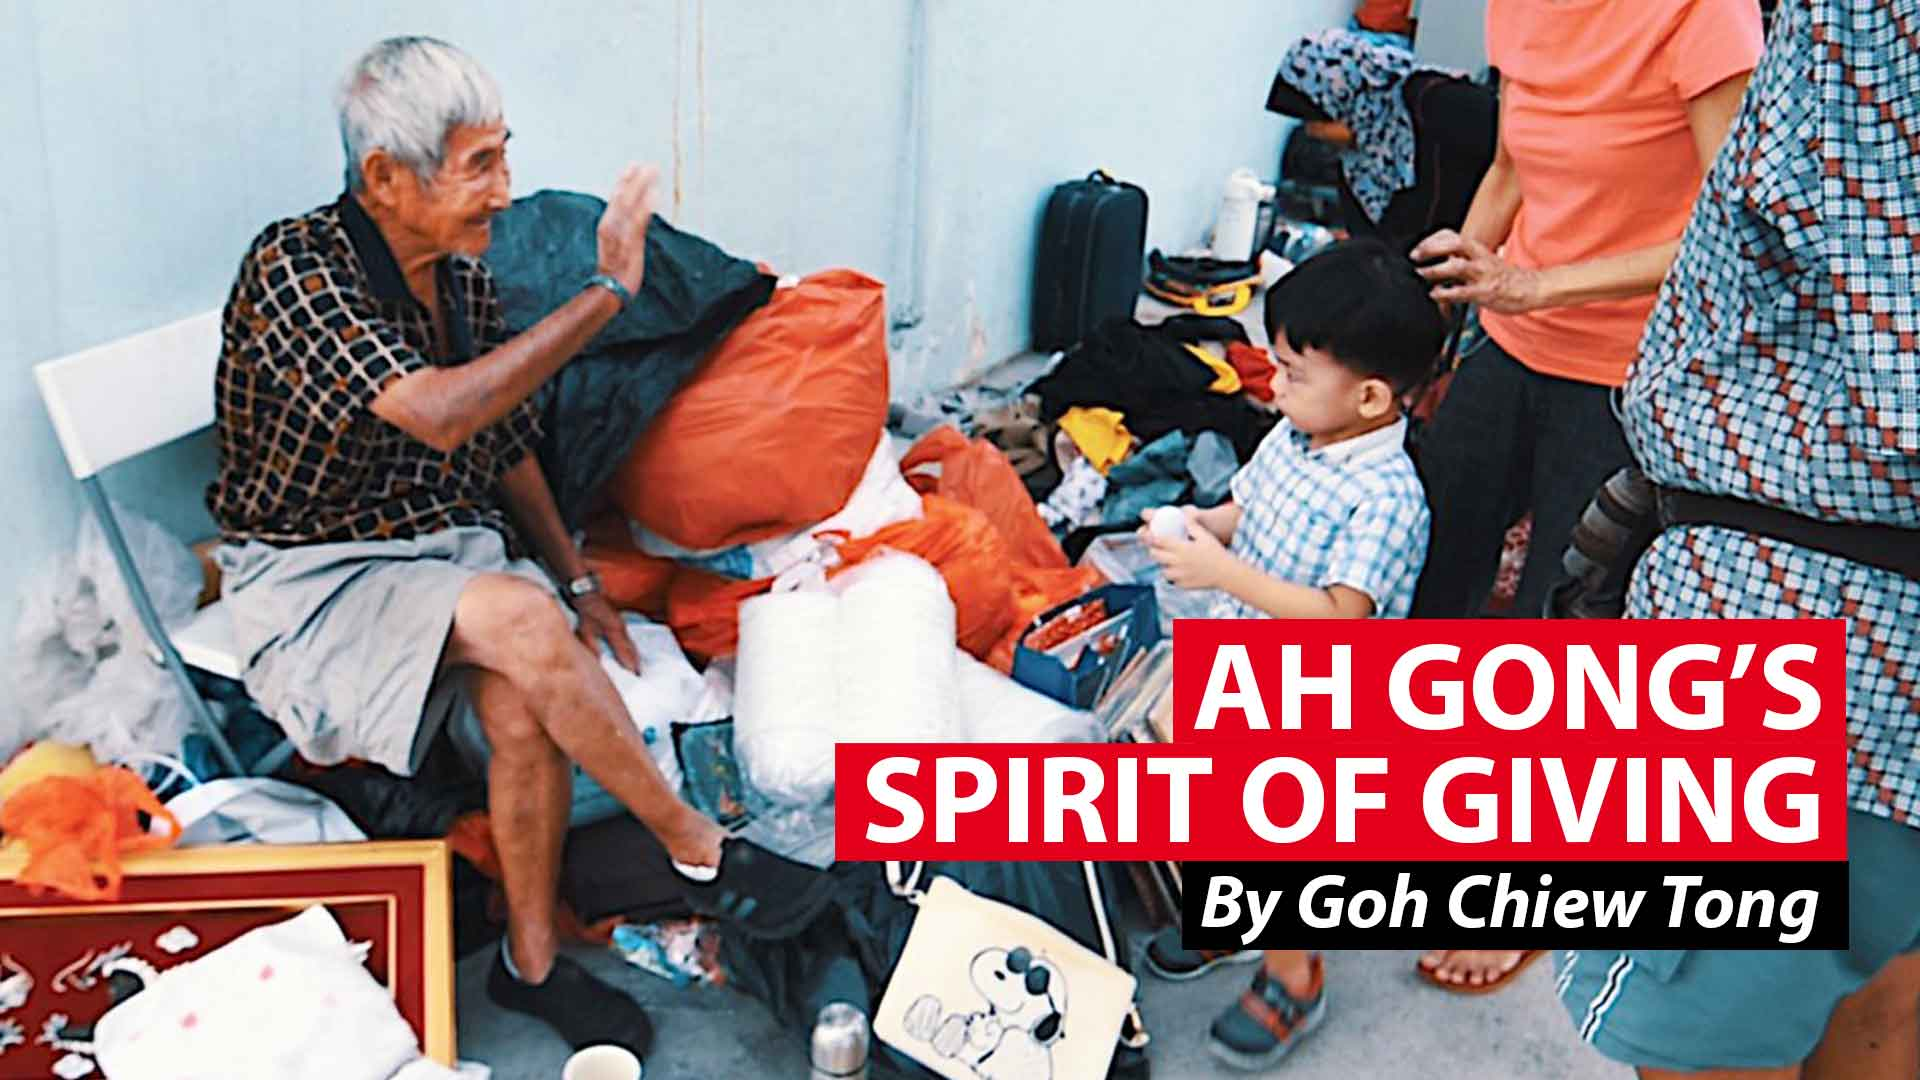 Ah Gong's spirit of giving: Eunos' elderly peddler